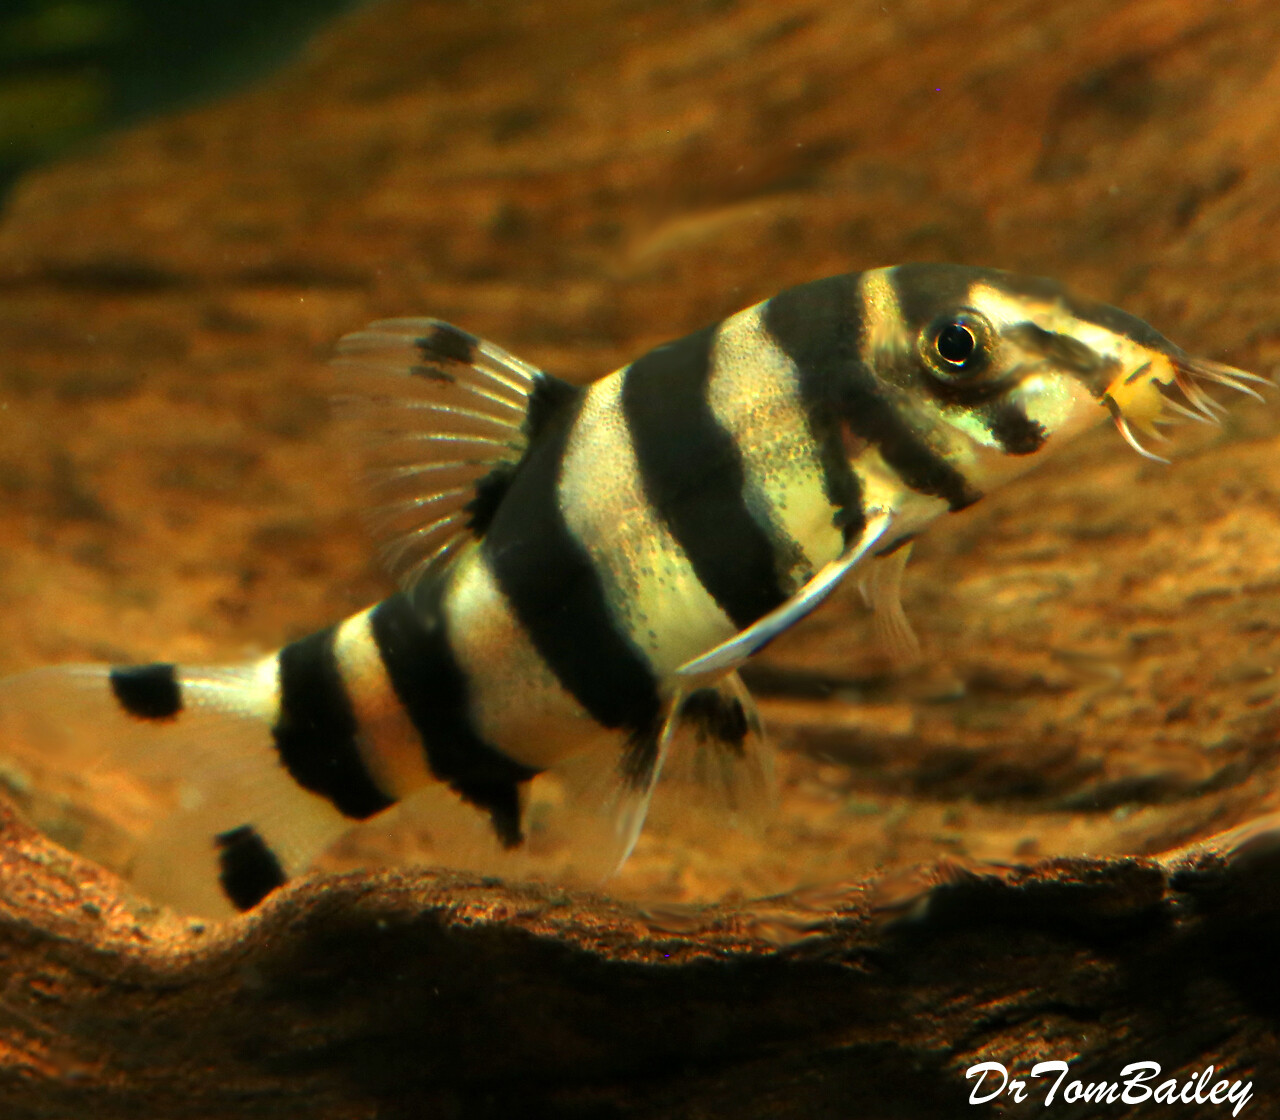 Premium Rare and New, Golden Zebra Loach, Botia histrionica